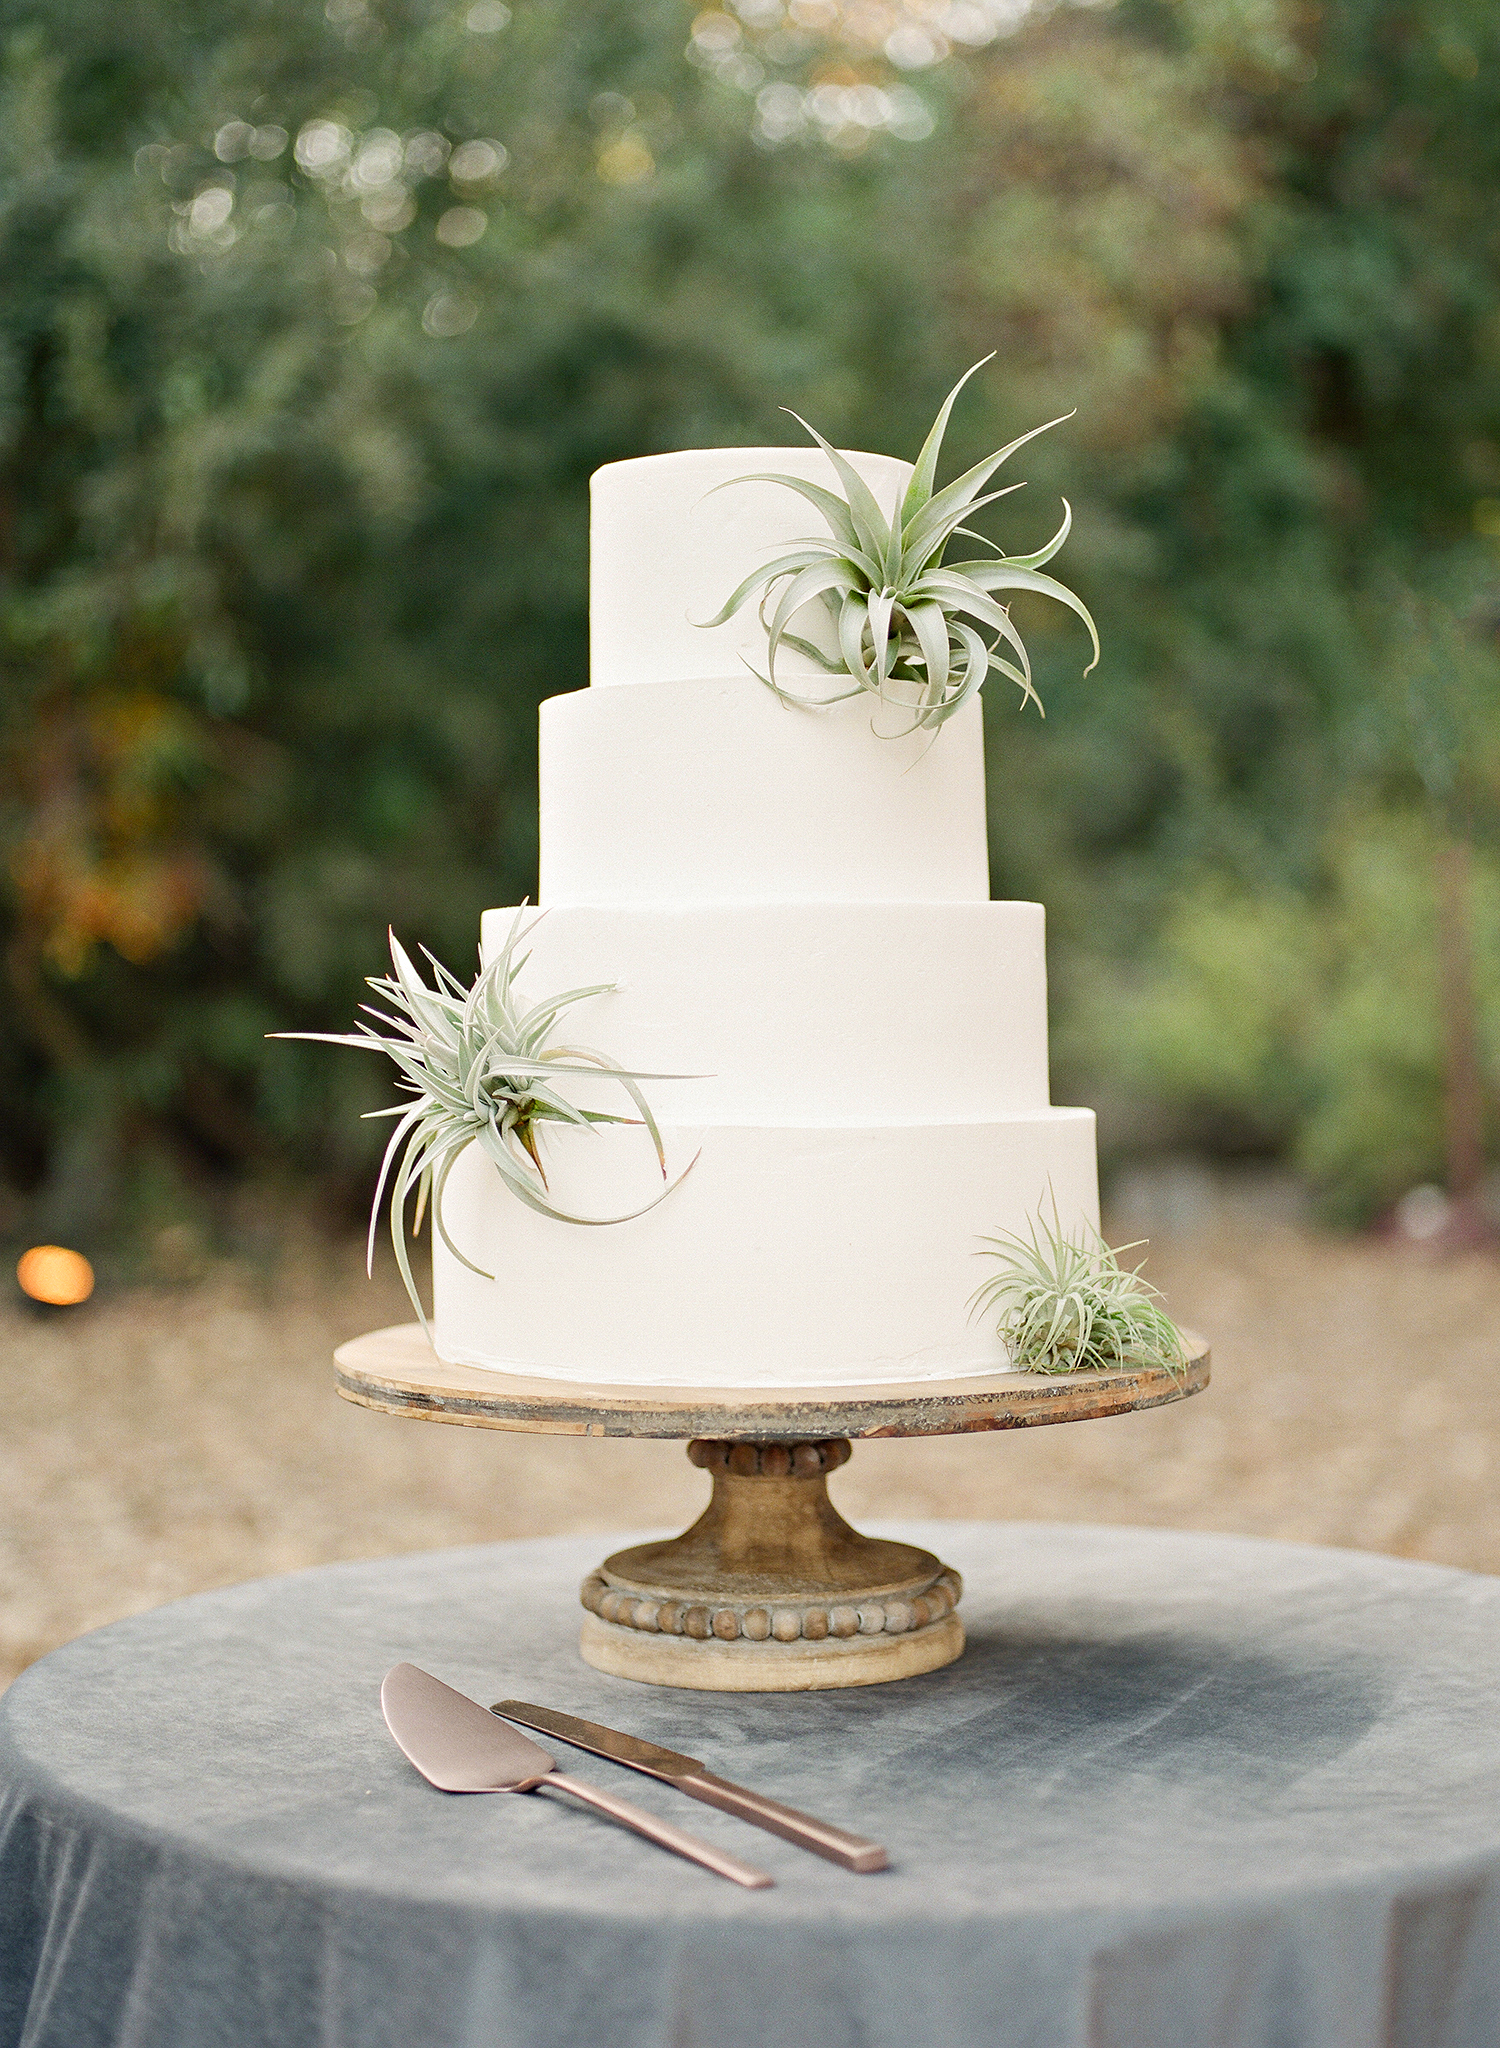 Emma mike California wedding Corbin gurkin cake